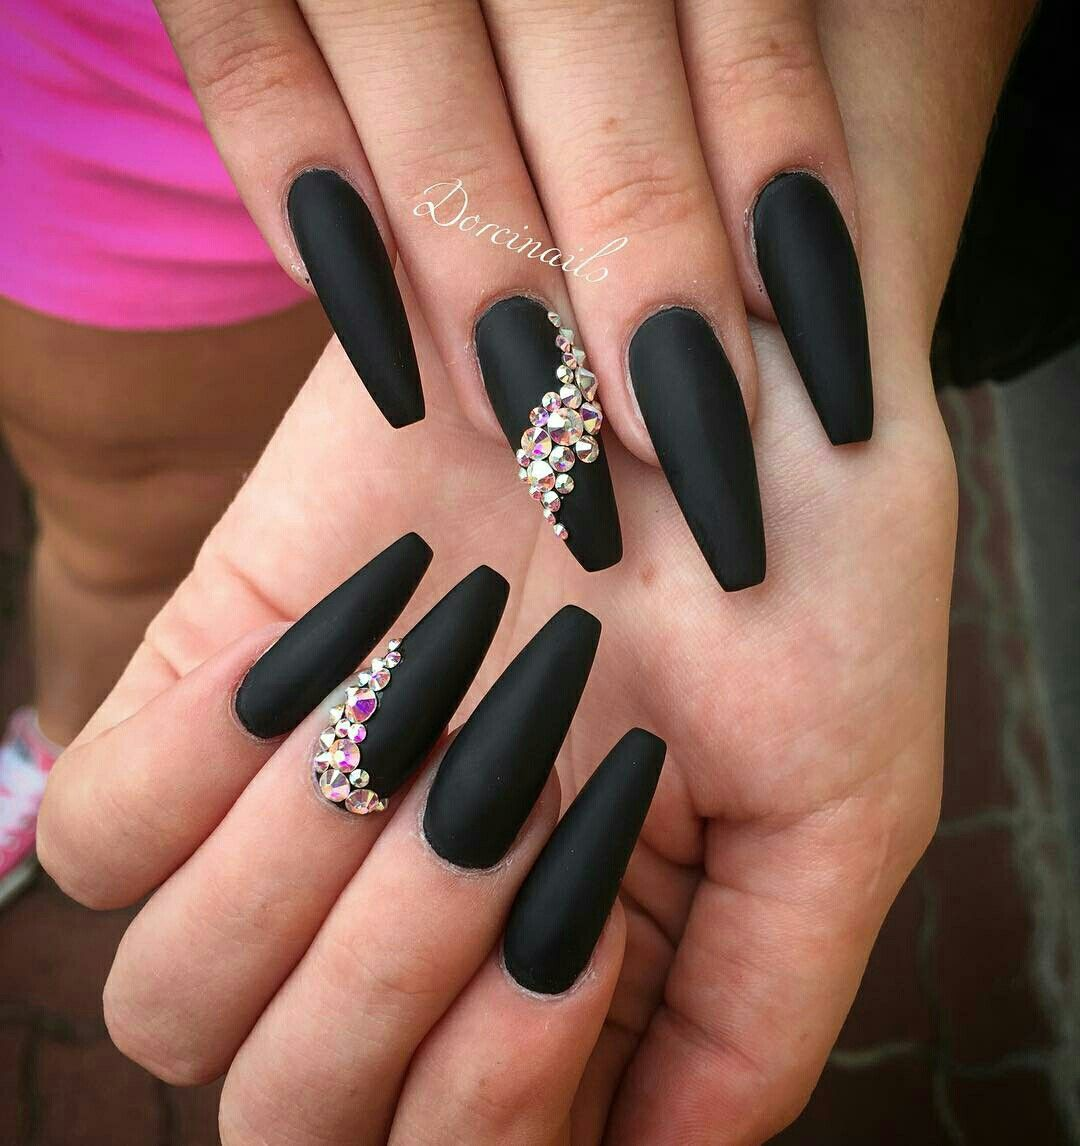 Pin by Vanessa on CLAWS | Black coffin nails, Coffin nails ...